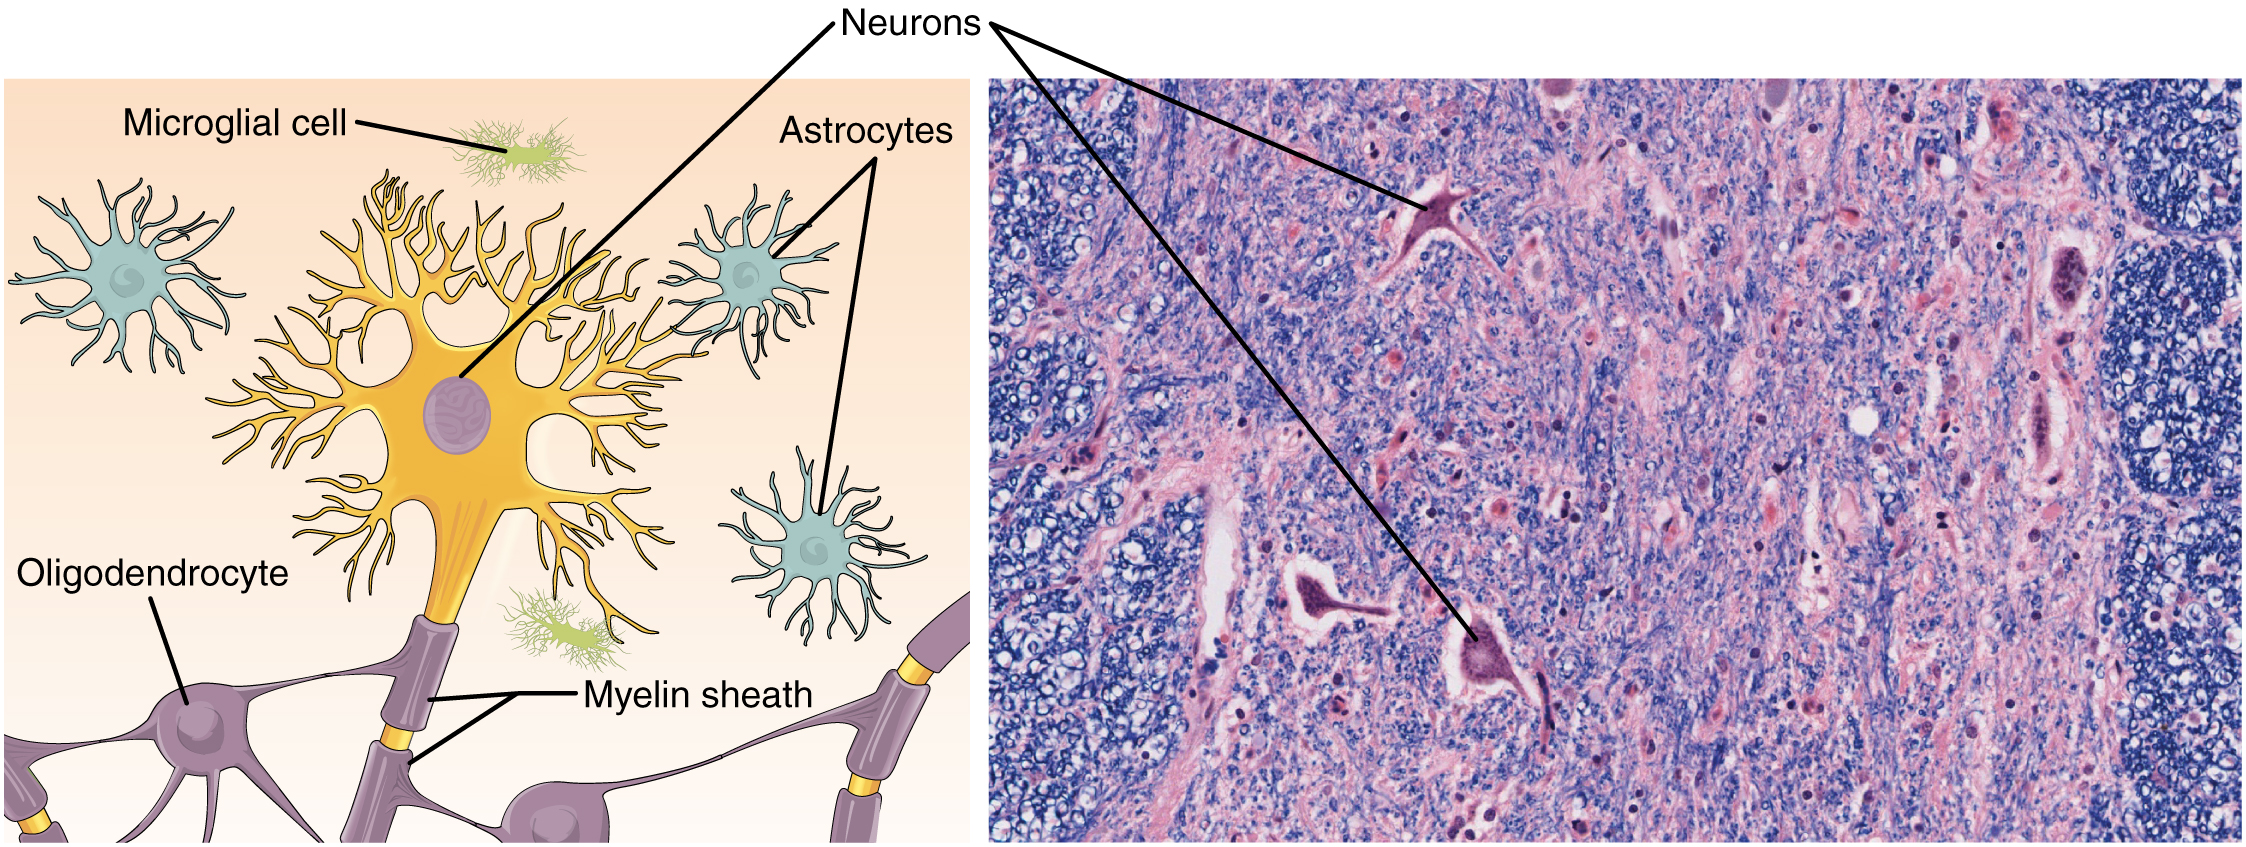 Nervous tissue mediates perception and response anatomy and part a of this diagram shows various types of nerve cells the largest cell is ccuart Choice Image